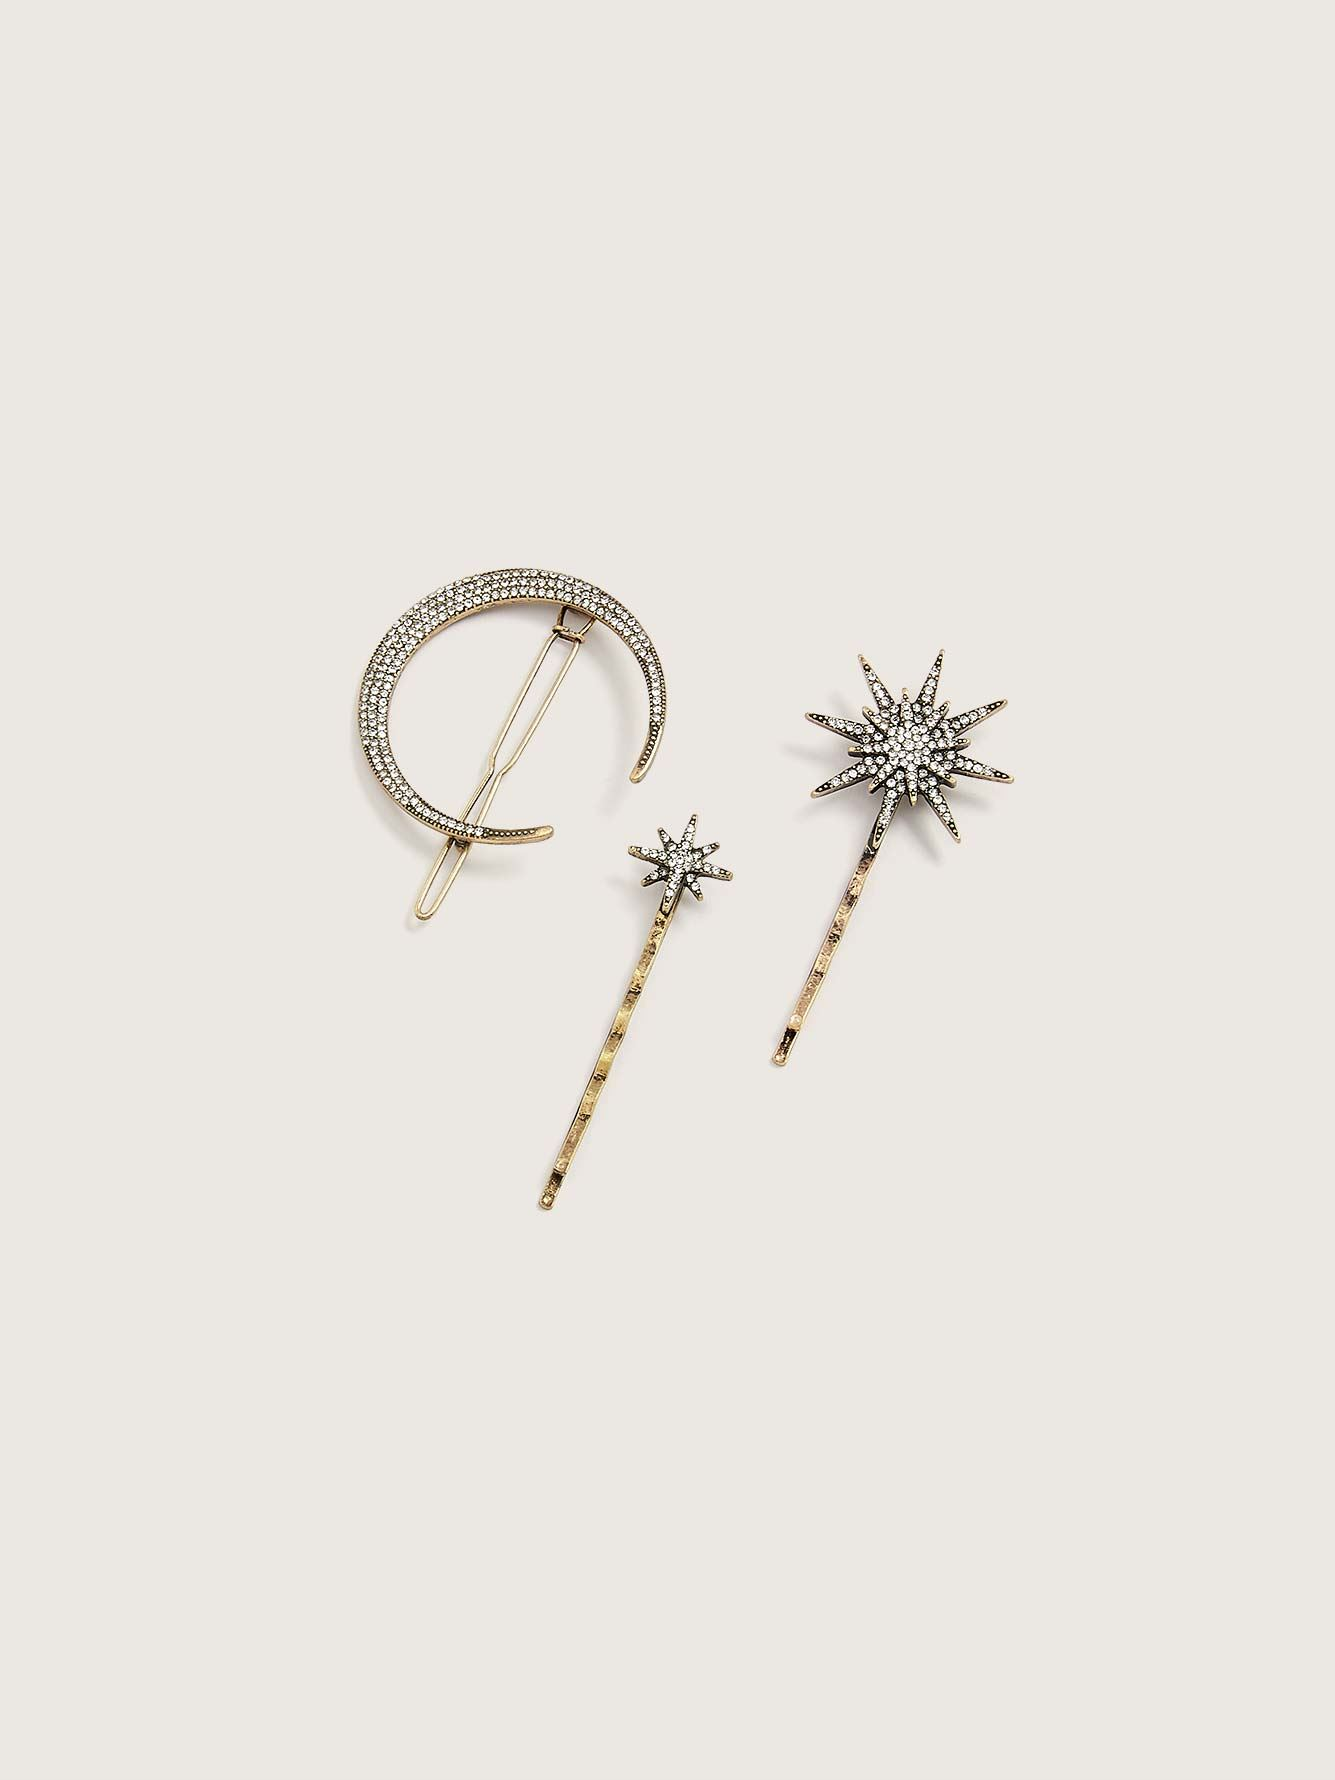 Astro Hair Pins, Pack of 3 - Addition Elle